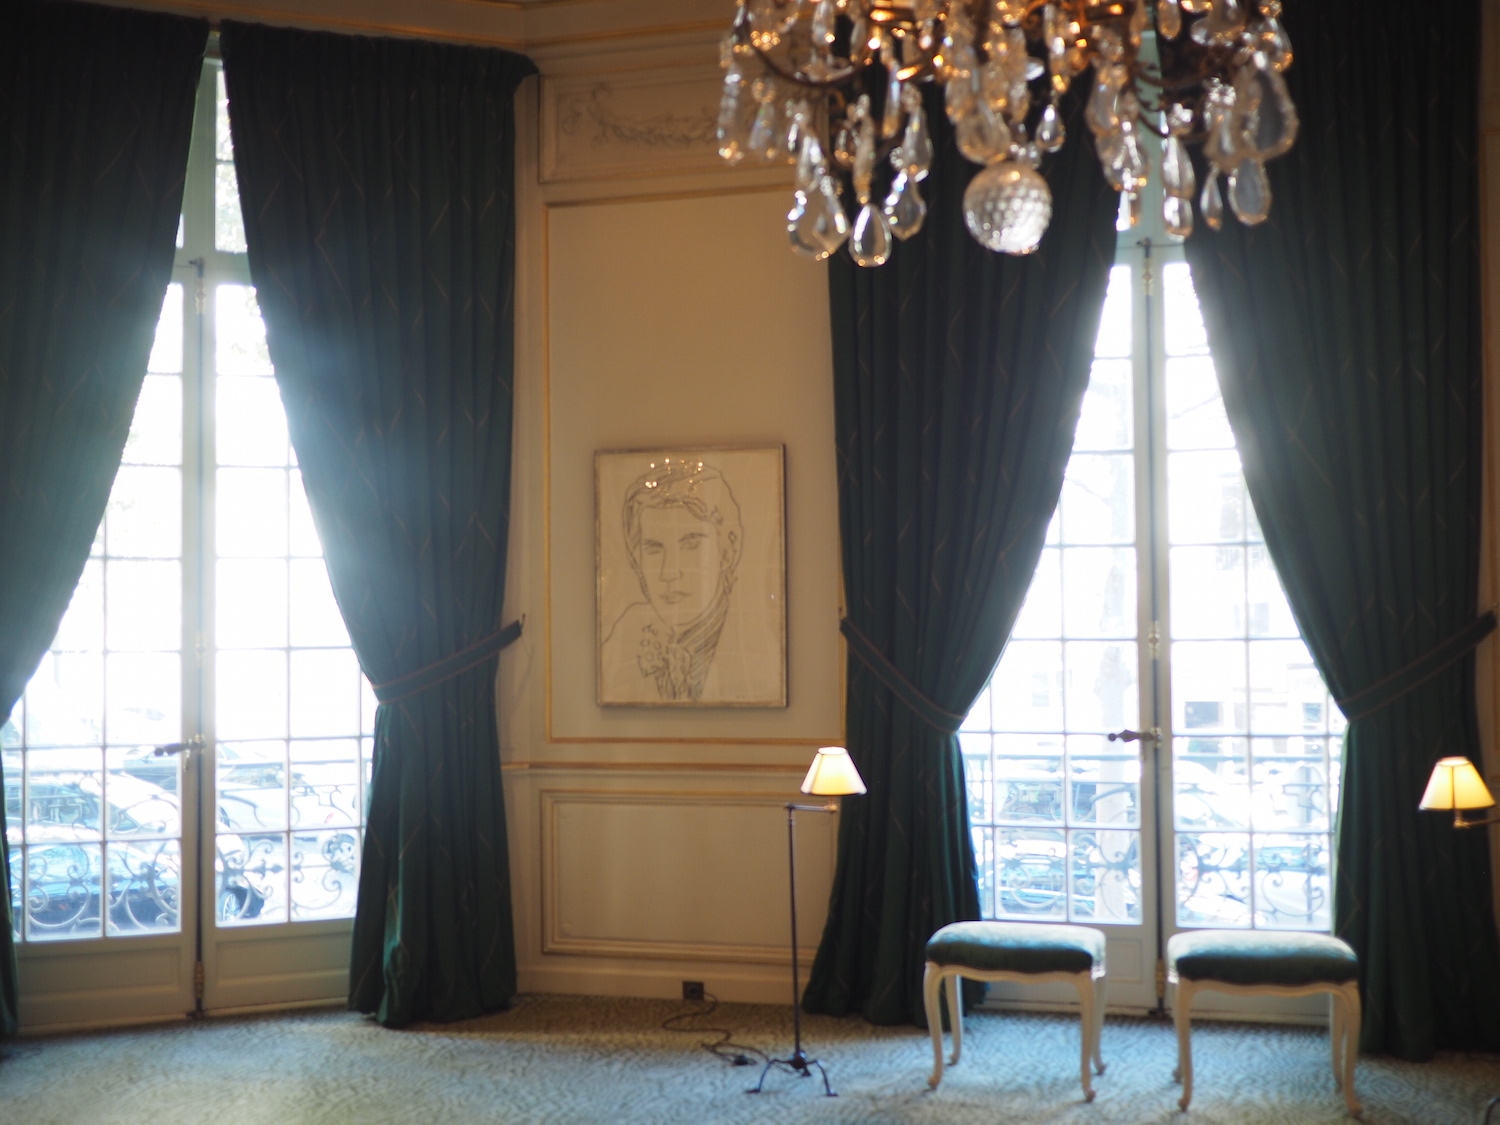 fondation pierre berge yves saint laurent museum paris